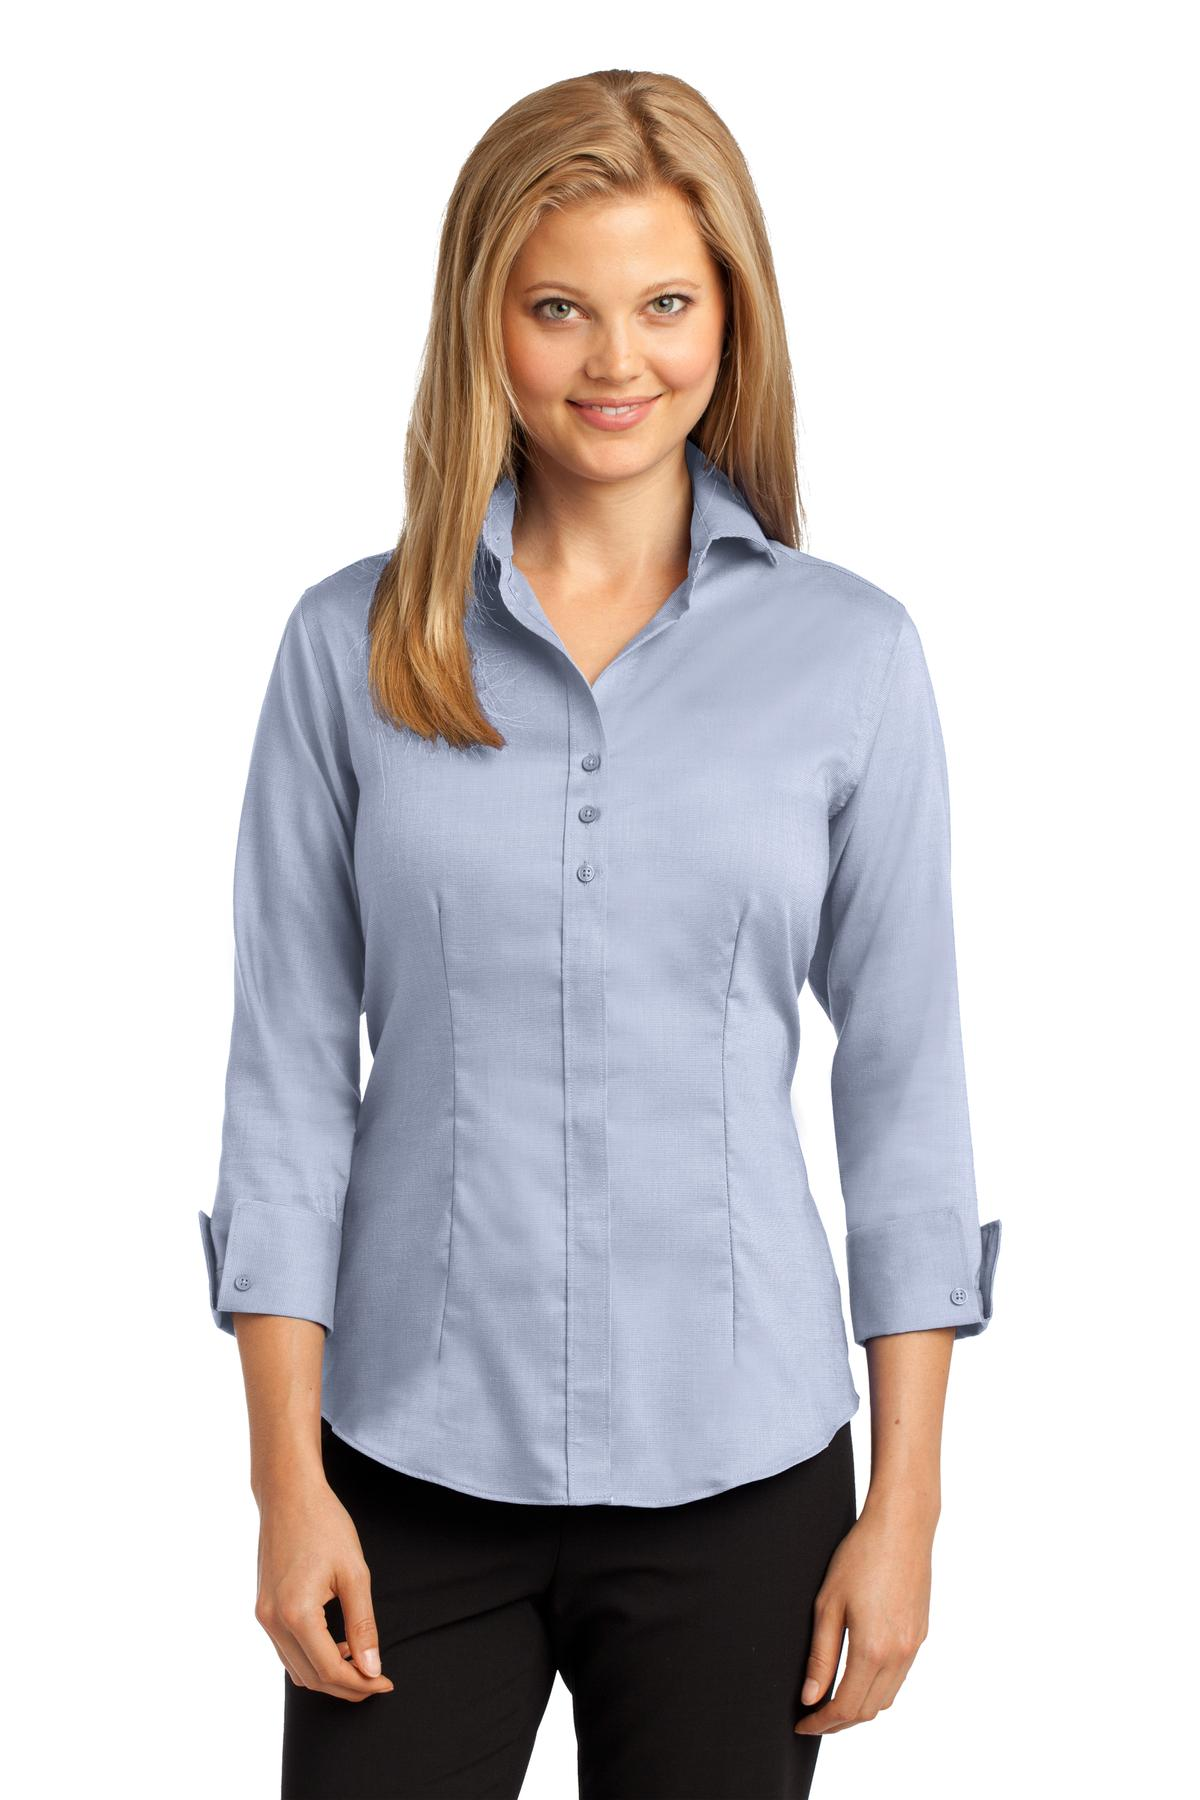 Red House® Ladies 3/4-Sleeve Nailhead Non-Iron Shirt.-Red House